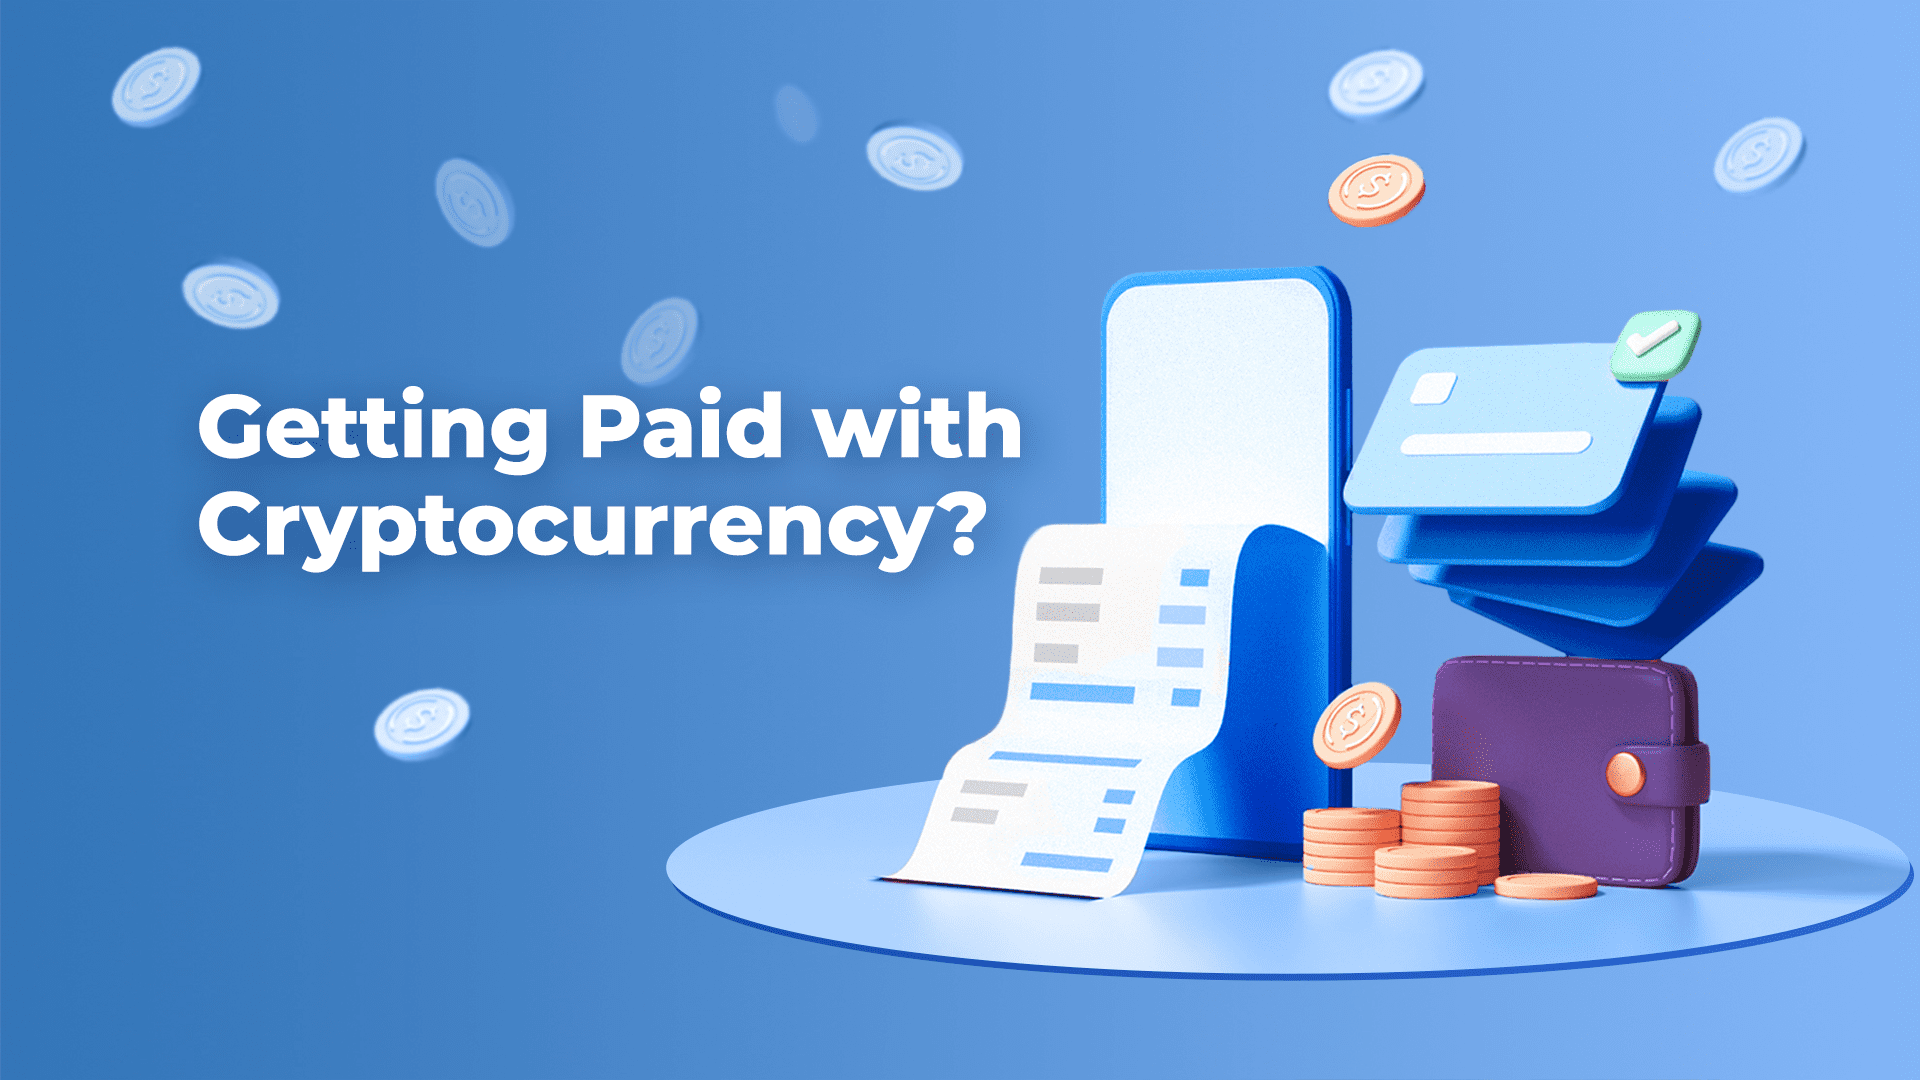 stablecoin cryptocurrencies